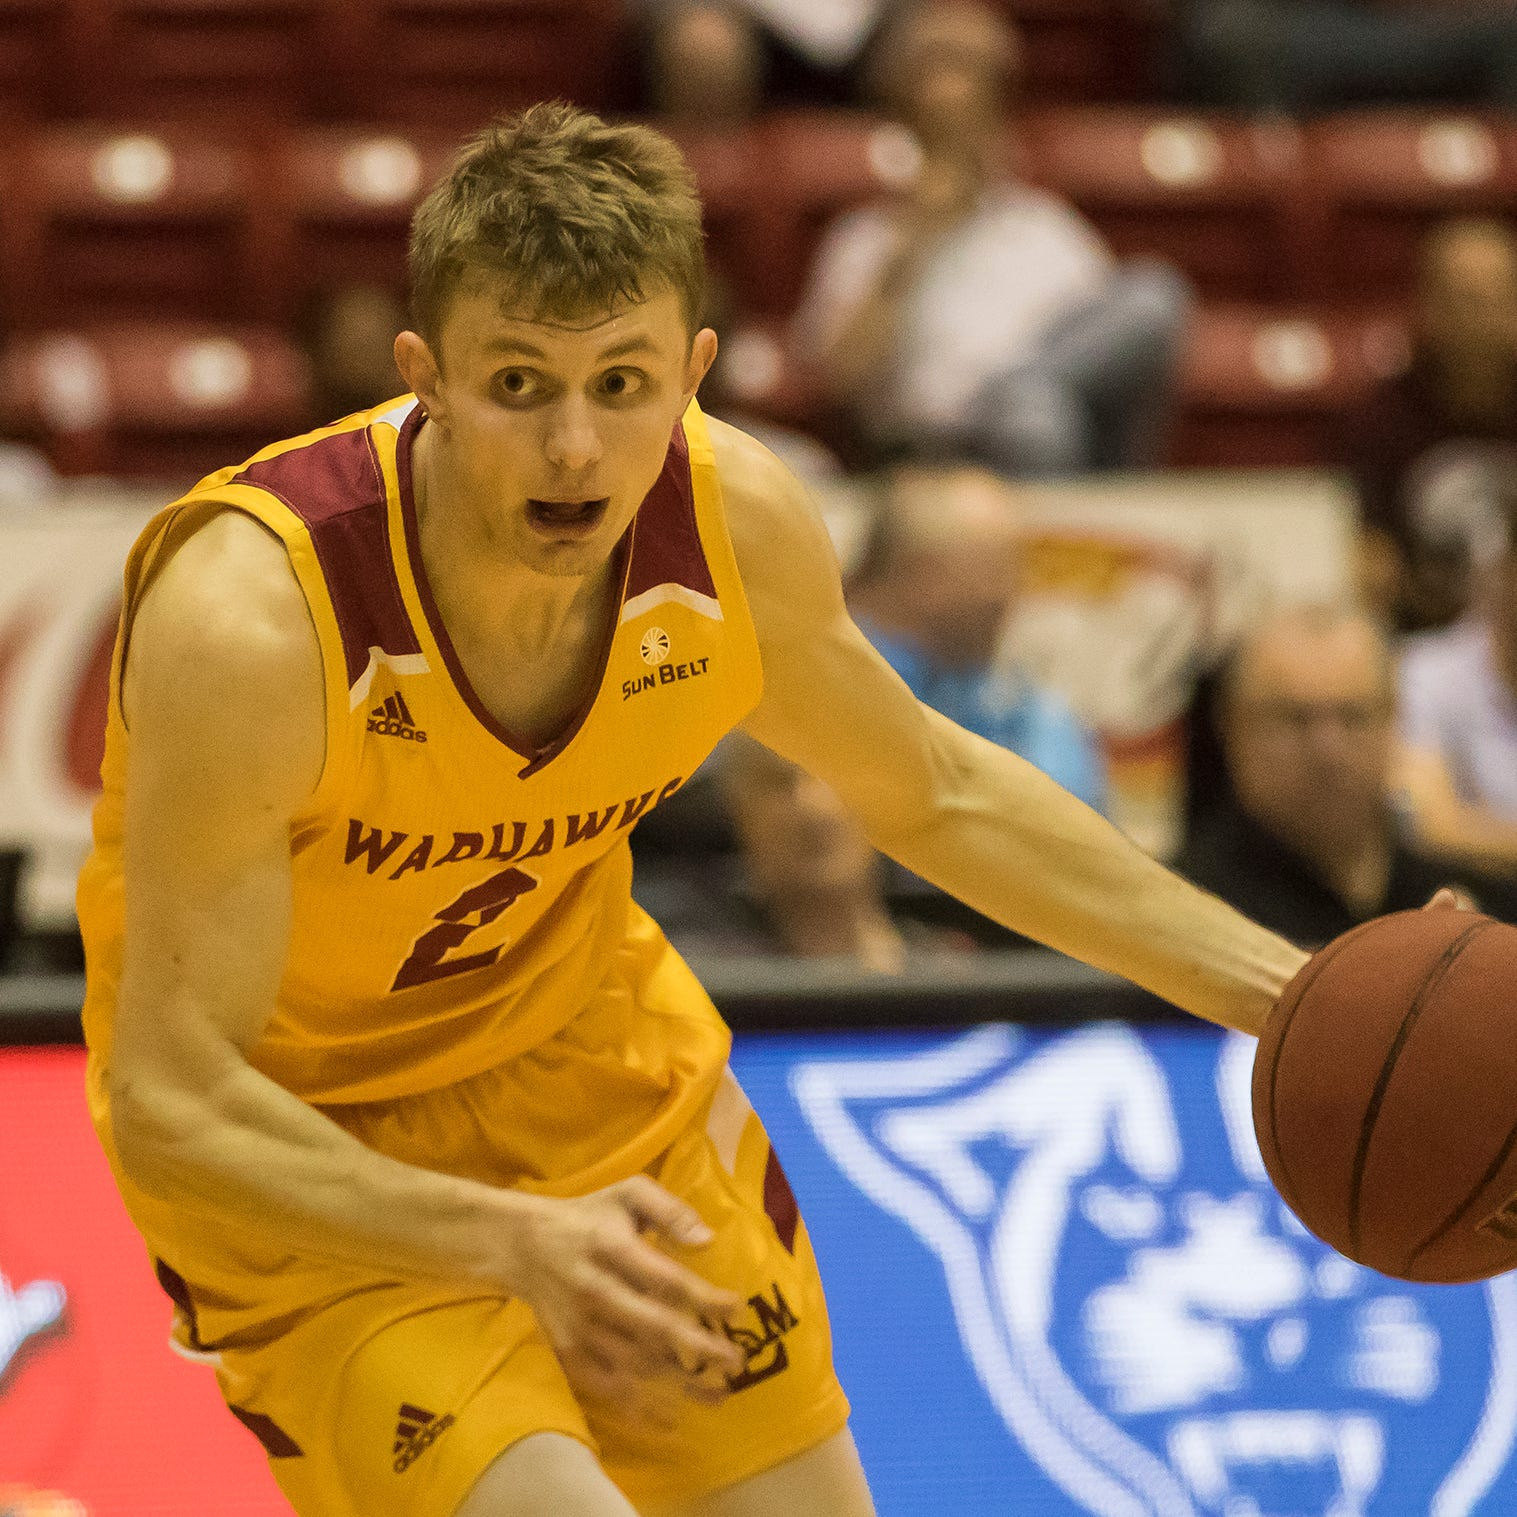 University of Louisiana at Monroe's Michael Ertel (2) makes a drive to the net during the game against Georgia State at Fant-Ewing Coliseum on Feb. 6.